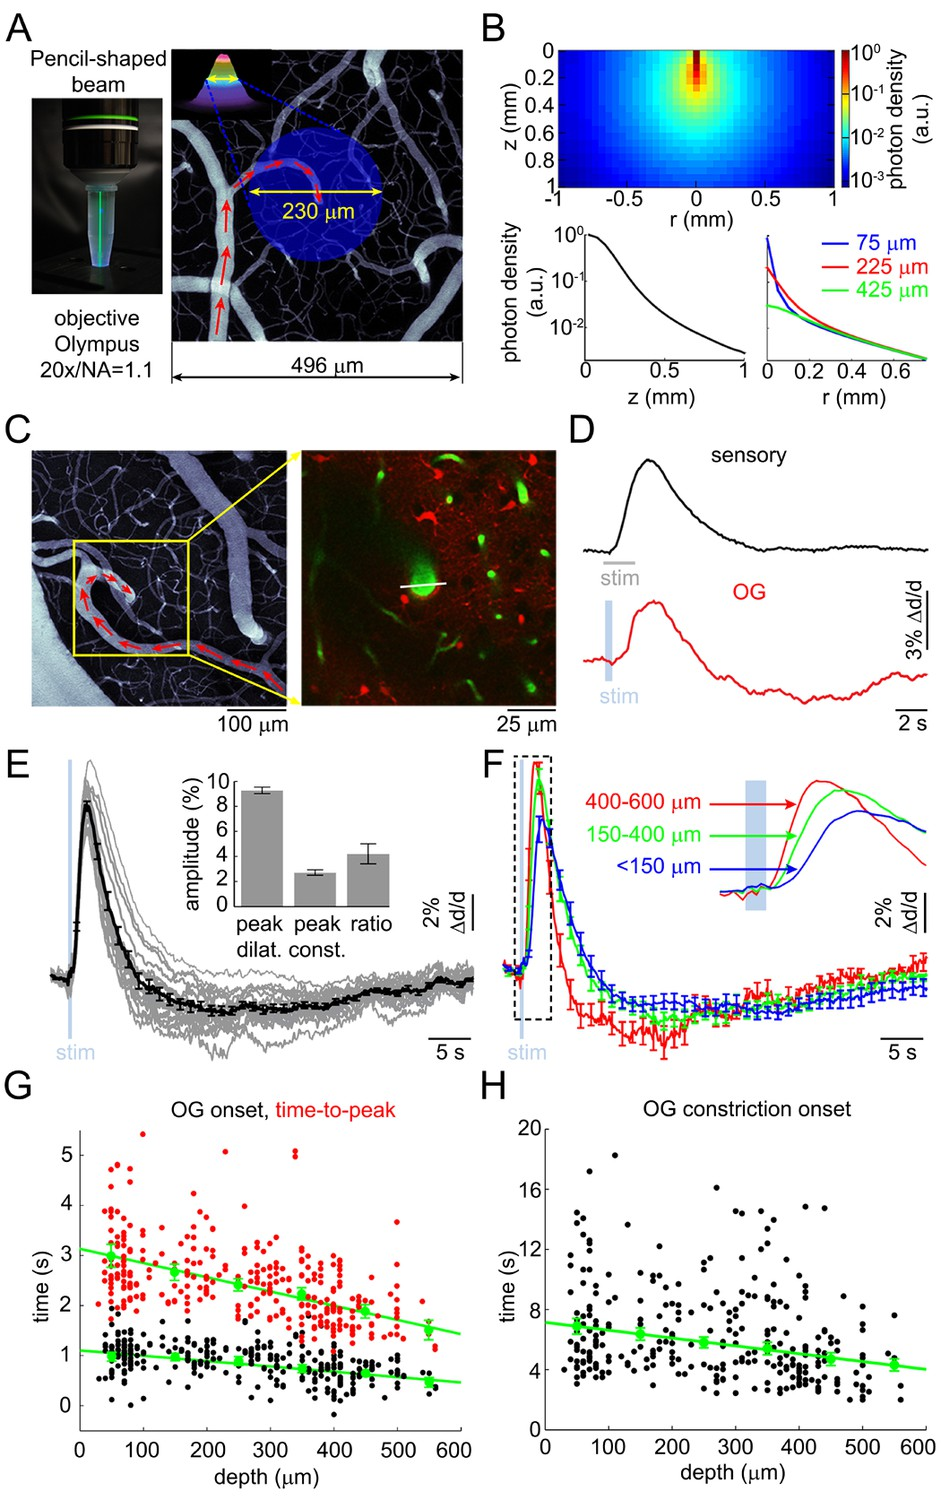 Cell Type Specificity Of Neurovascular Coupling In Cerebral Cortex 12 V Wiring Diagram 350 Cc 500 Us Canada Version Arteriolar Response To Og Stimulation Ins